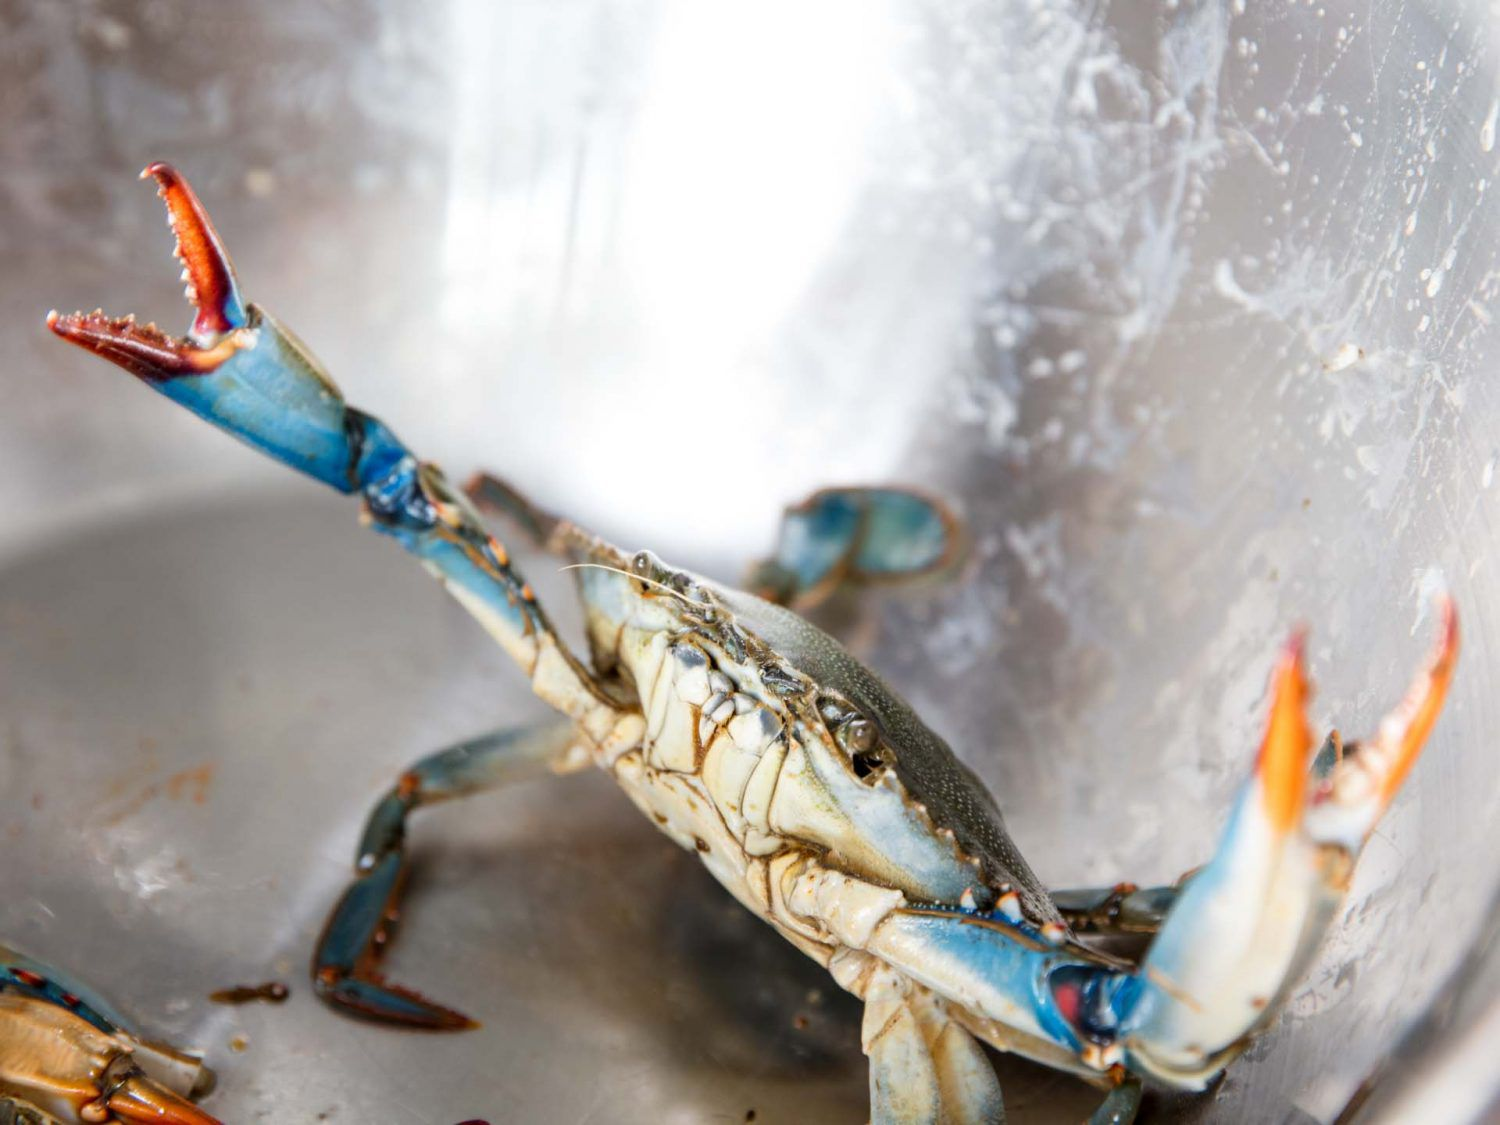 A live blue crab in a metal bowl